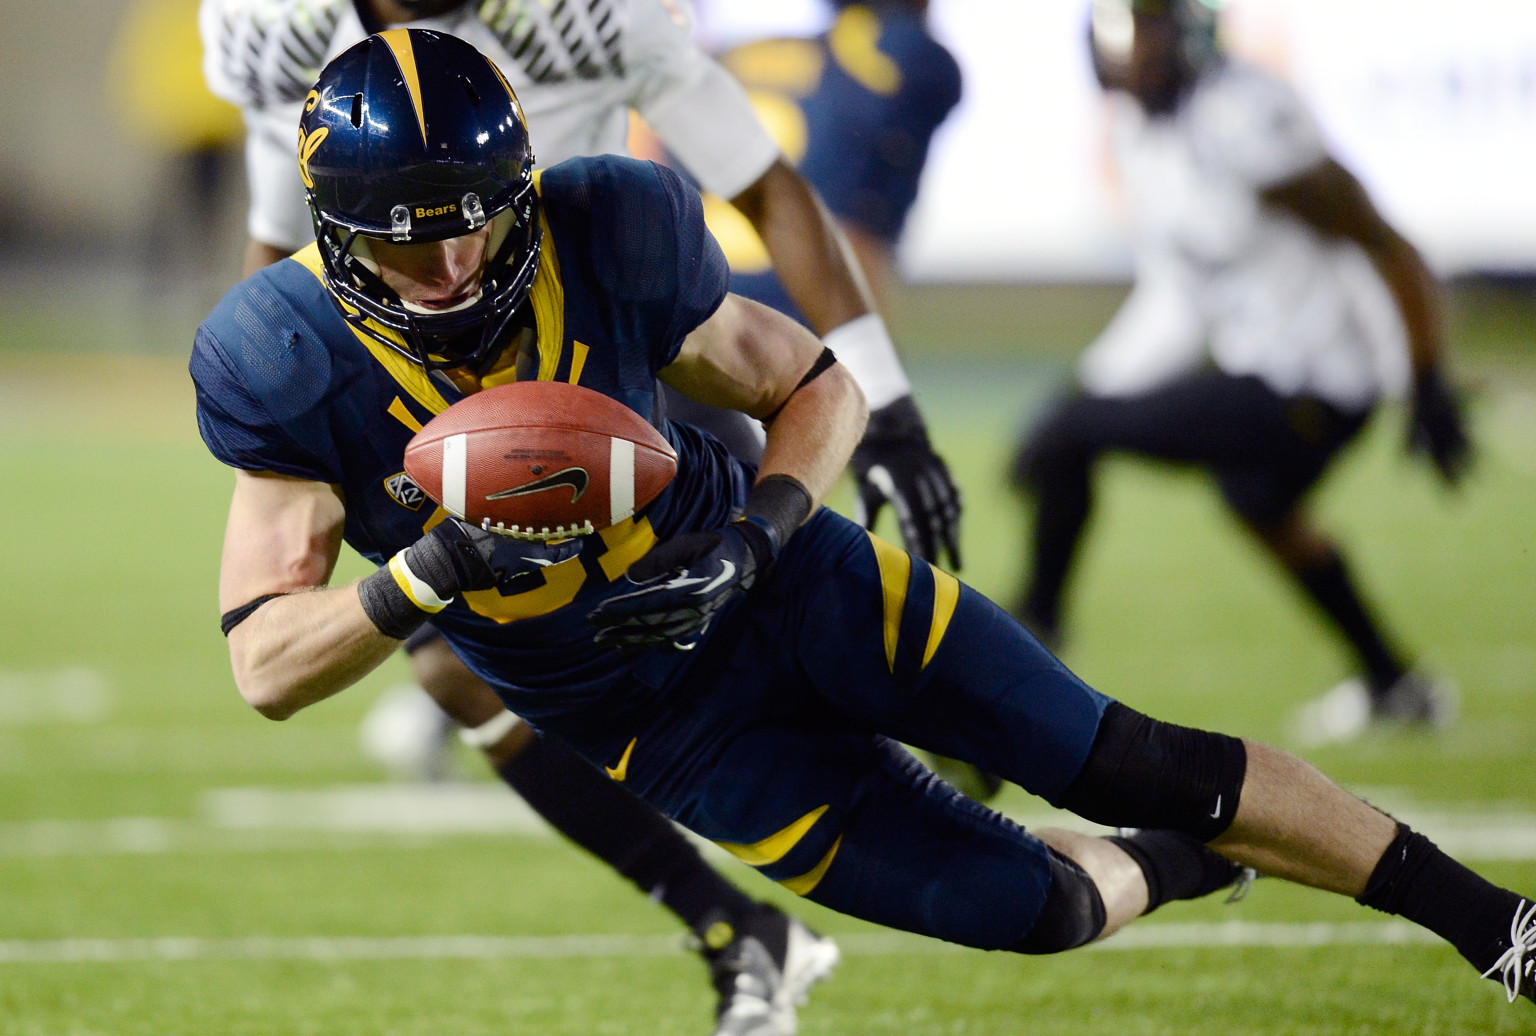 Cal Stadium Financing Flaws Could Cripple Athletic